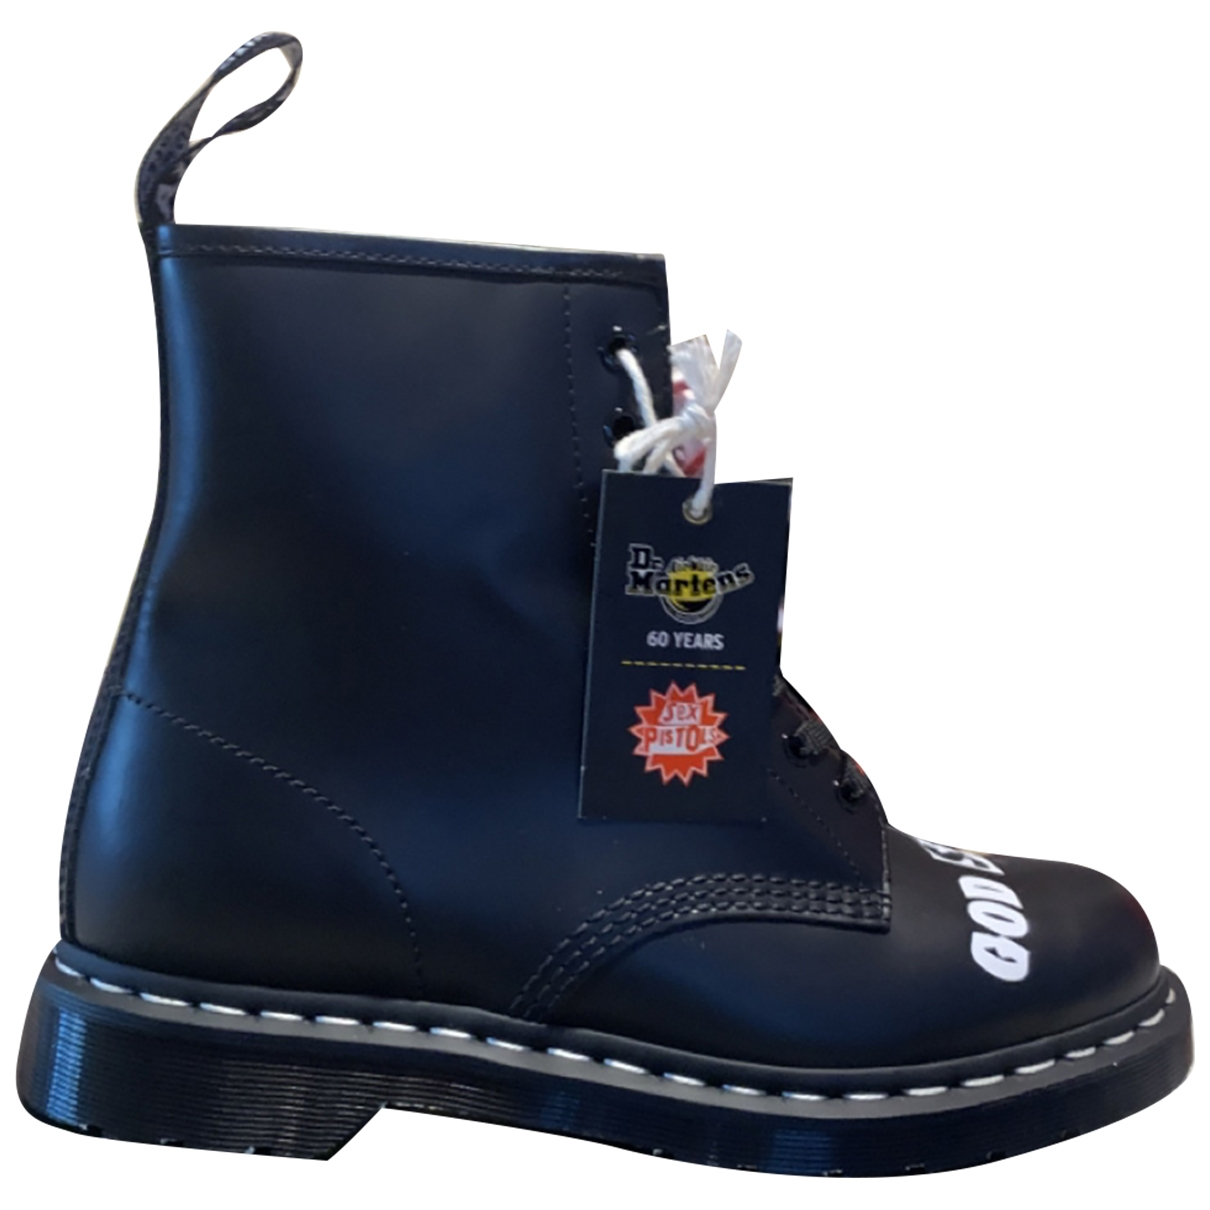 Dr. Martens 1460 Pascal (8 eye) Black Leather Boots for Men 43 EU